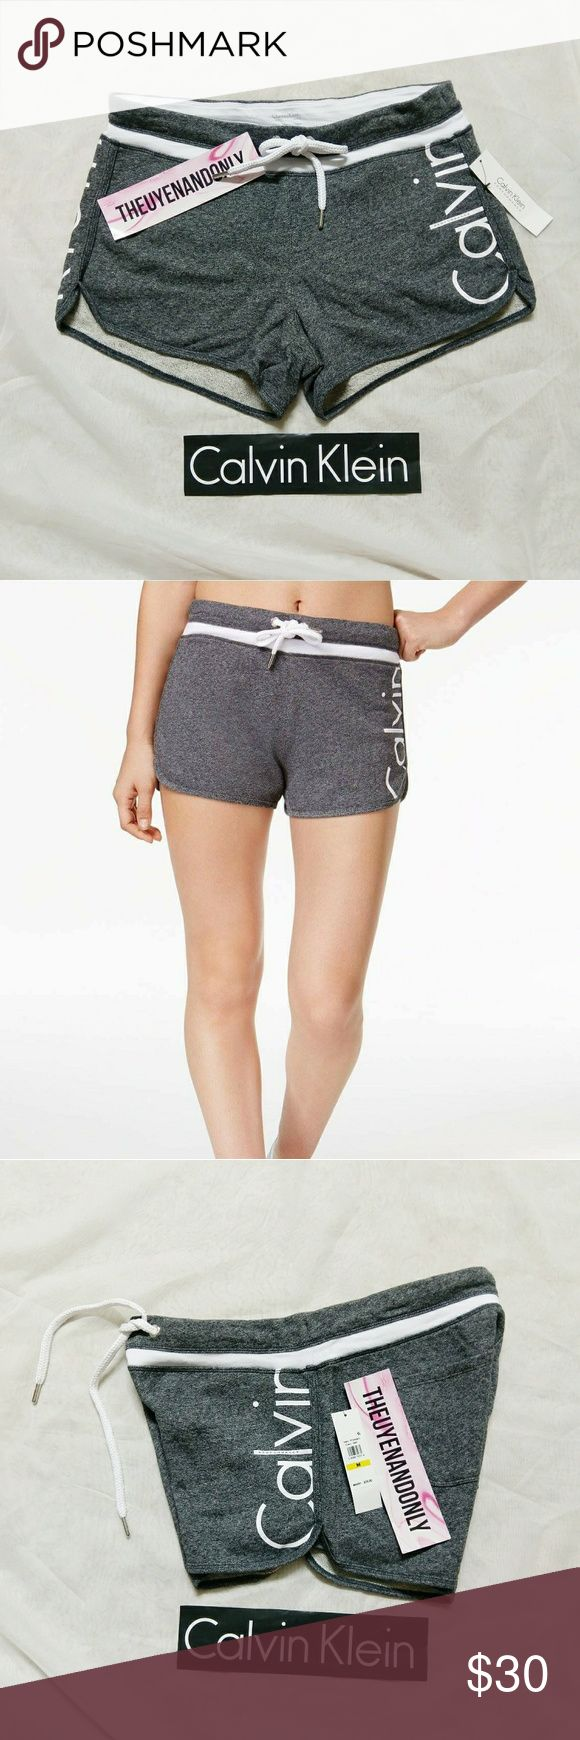 NWT Authentic CK Calvin Klein Performance Shorts NEW WITH TAGS  AUTHENTIC CK Calvin Klein Performance Shorts Dark Gray  PRICE IS FIRM   FREE SHIP is available, please contact Calvin Klein Shorts